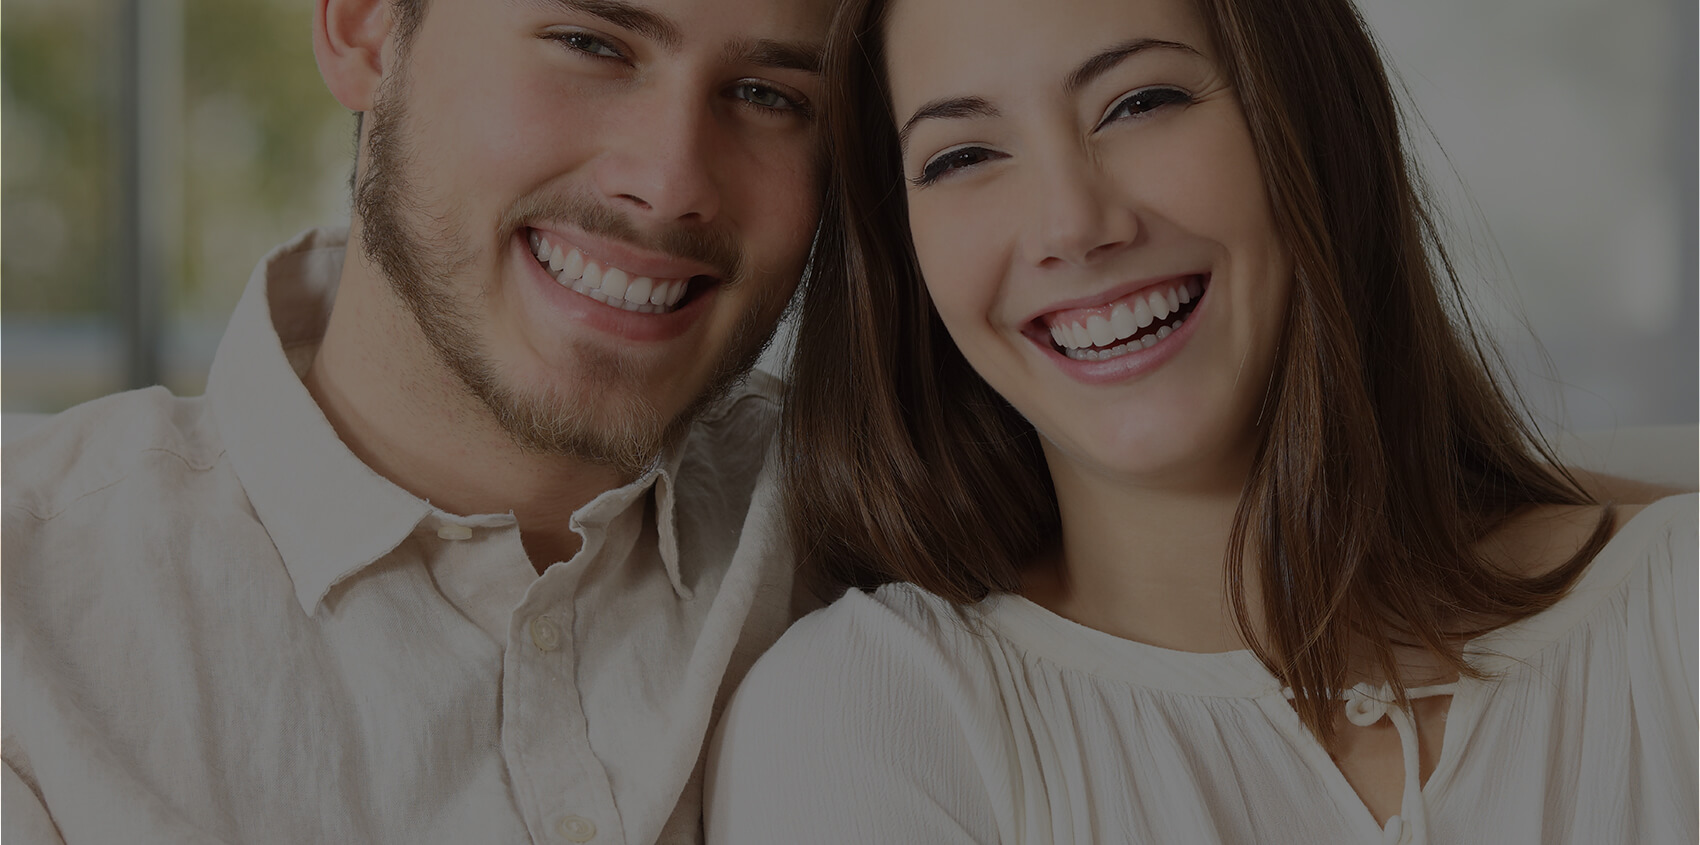 Concerned About Your Oral Health? A Dentist in Salt Lake City, UT Offers Oral Hygiene for Adults!